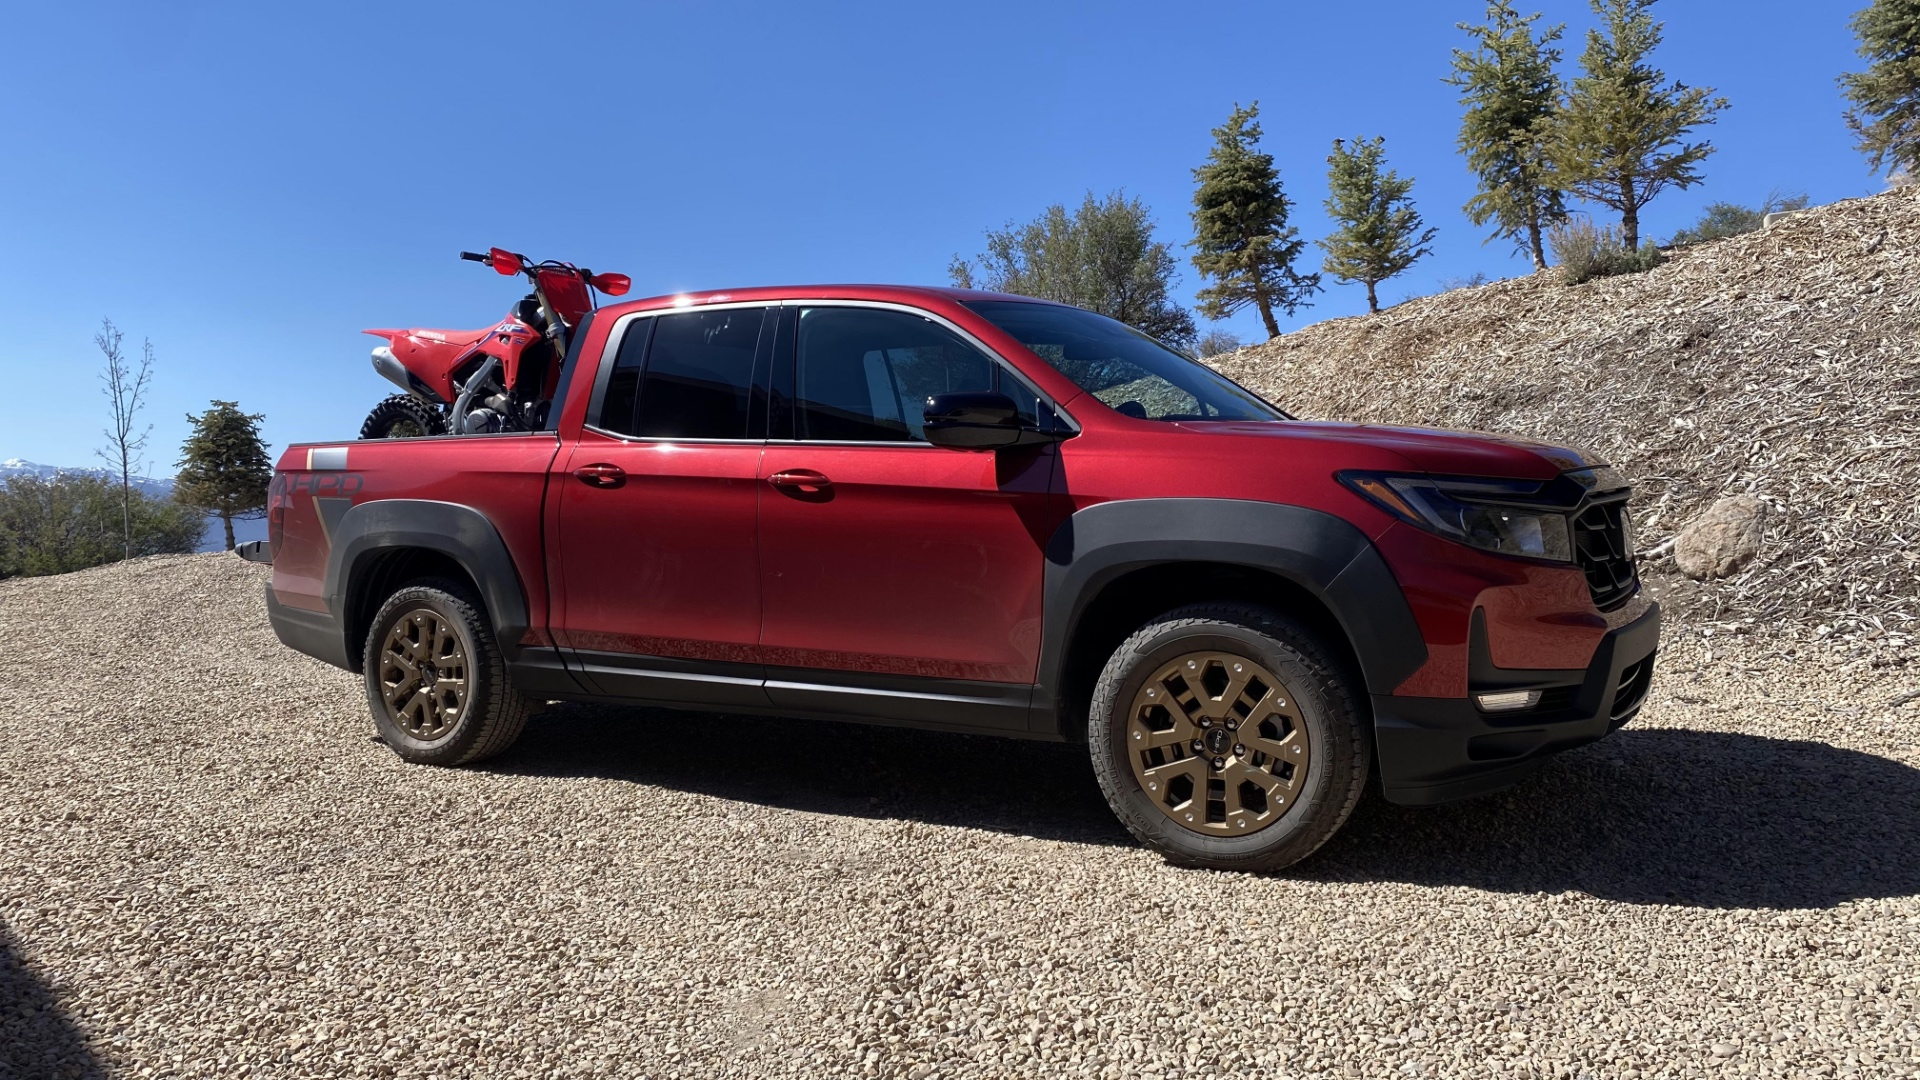 The Ridgeline with CRF450RX.